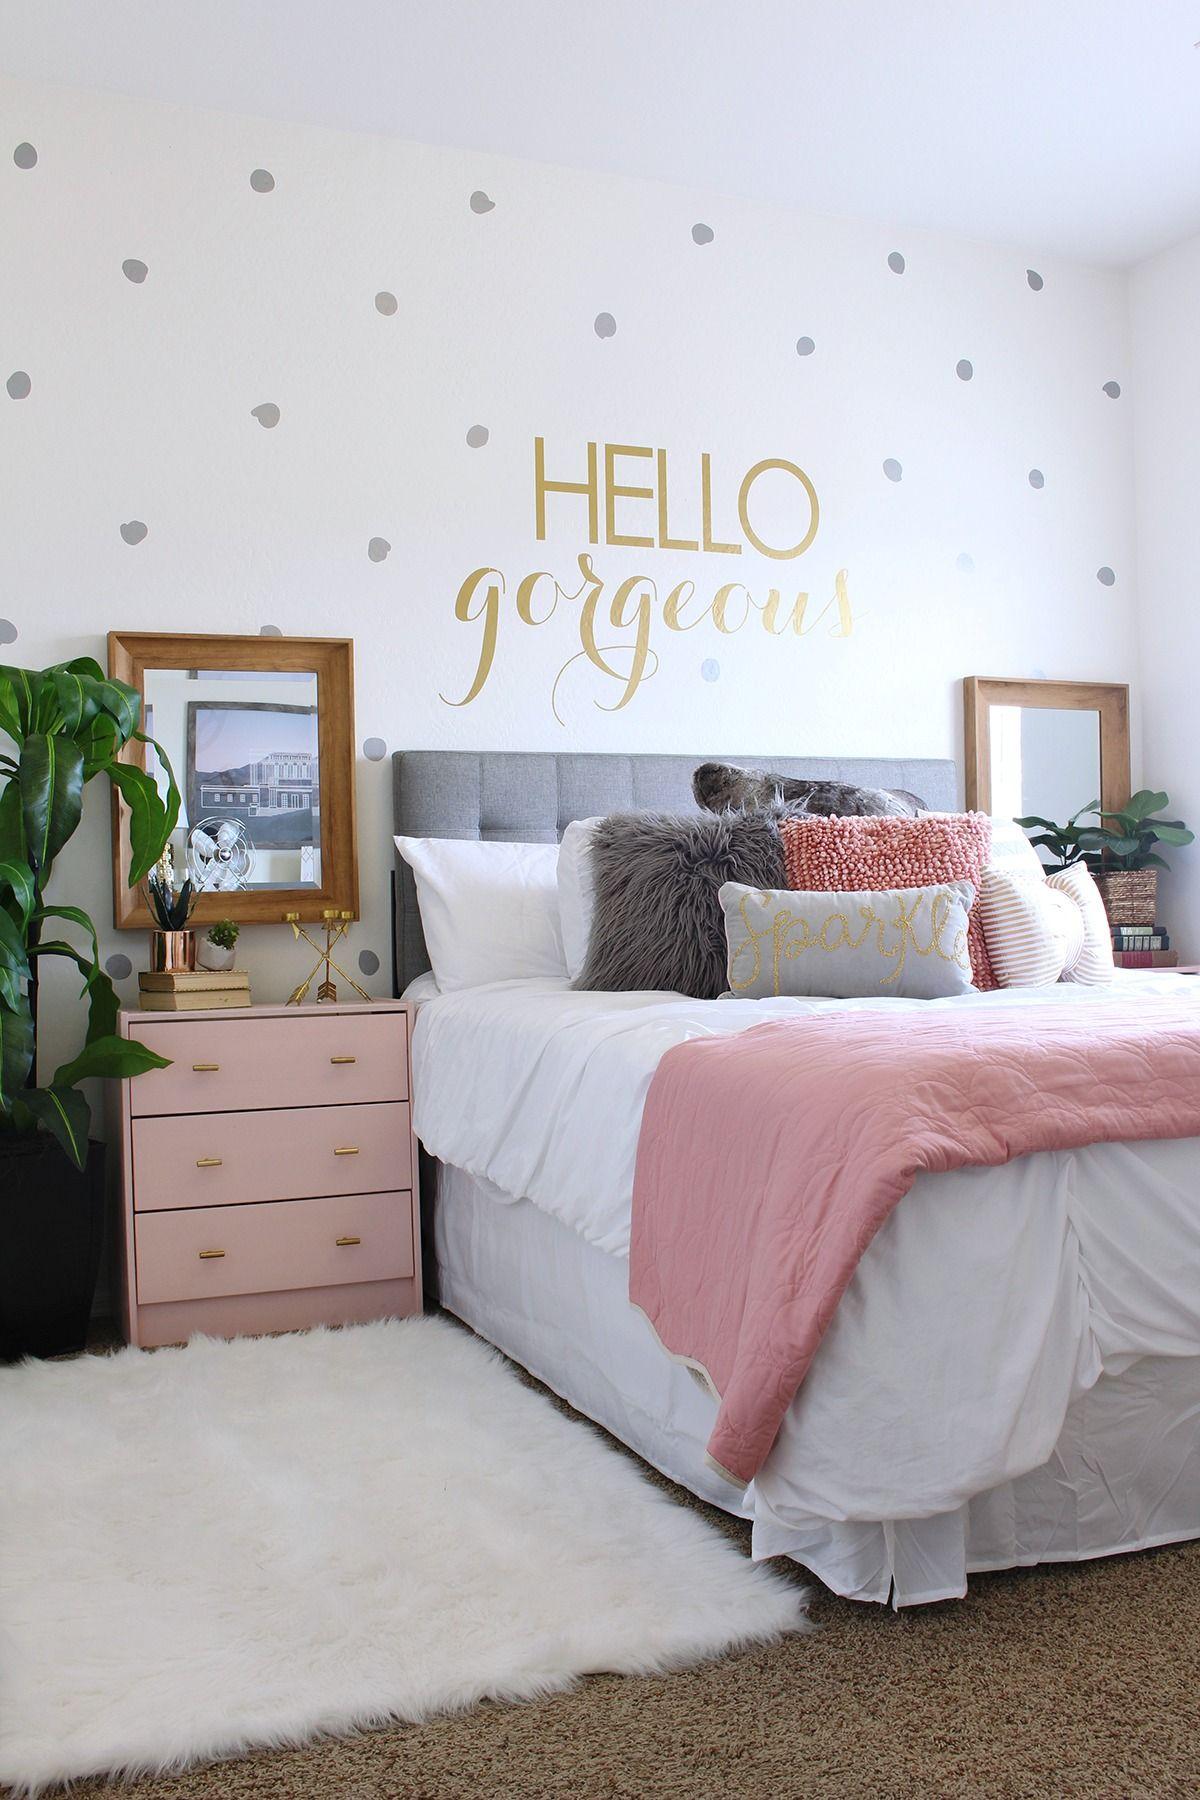 Teen Room Makeover ideas - .classyclutter.net | Love the combo of grey and blush pink with the metallic gold! Those pink nightstands are so cute! : teenage-room-girl - designwebi.com